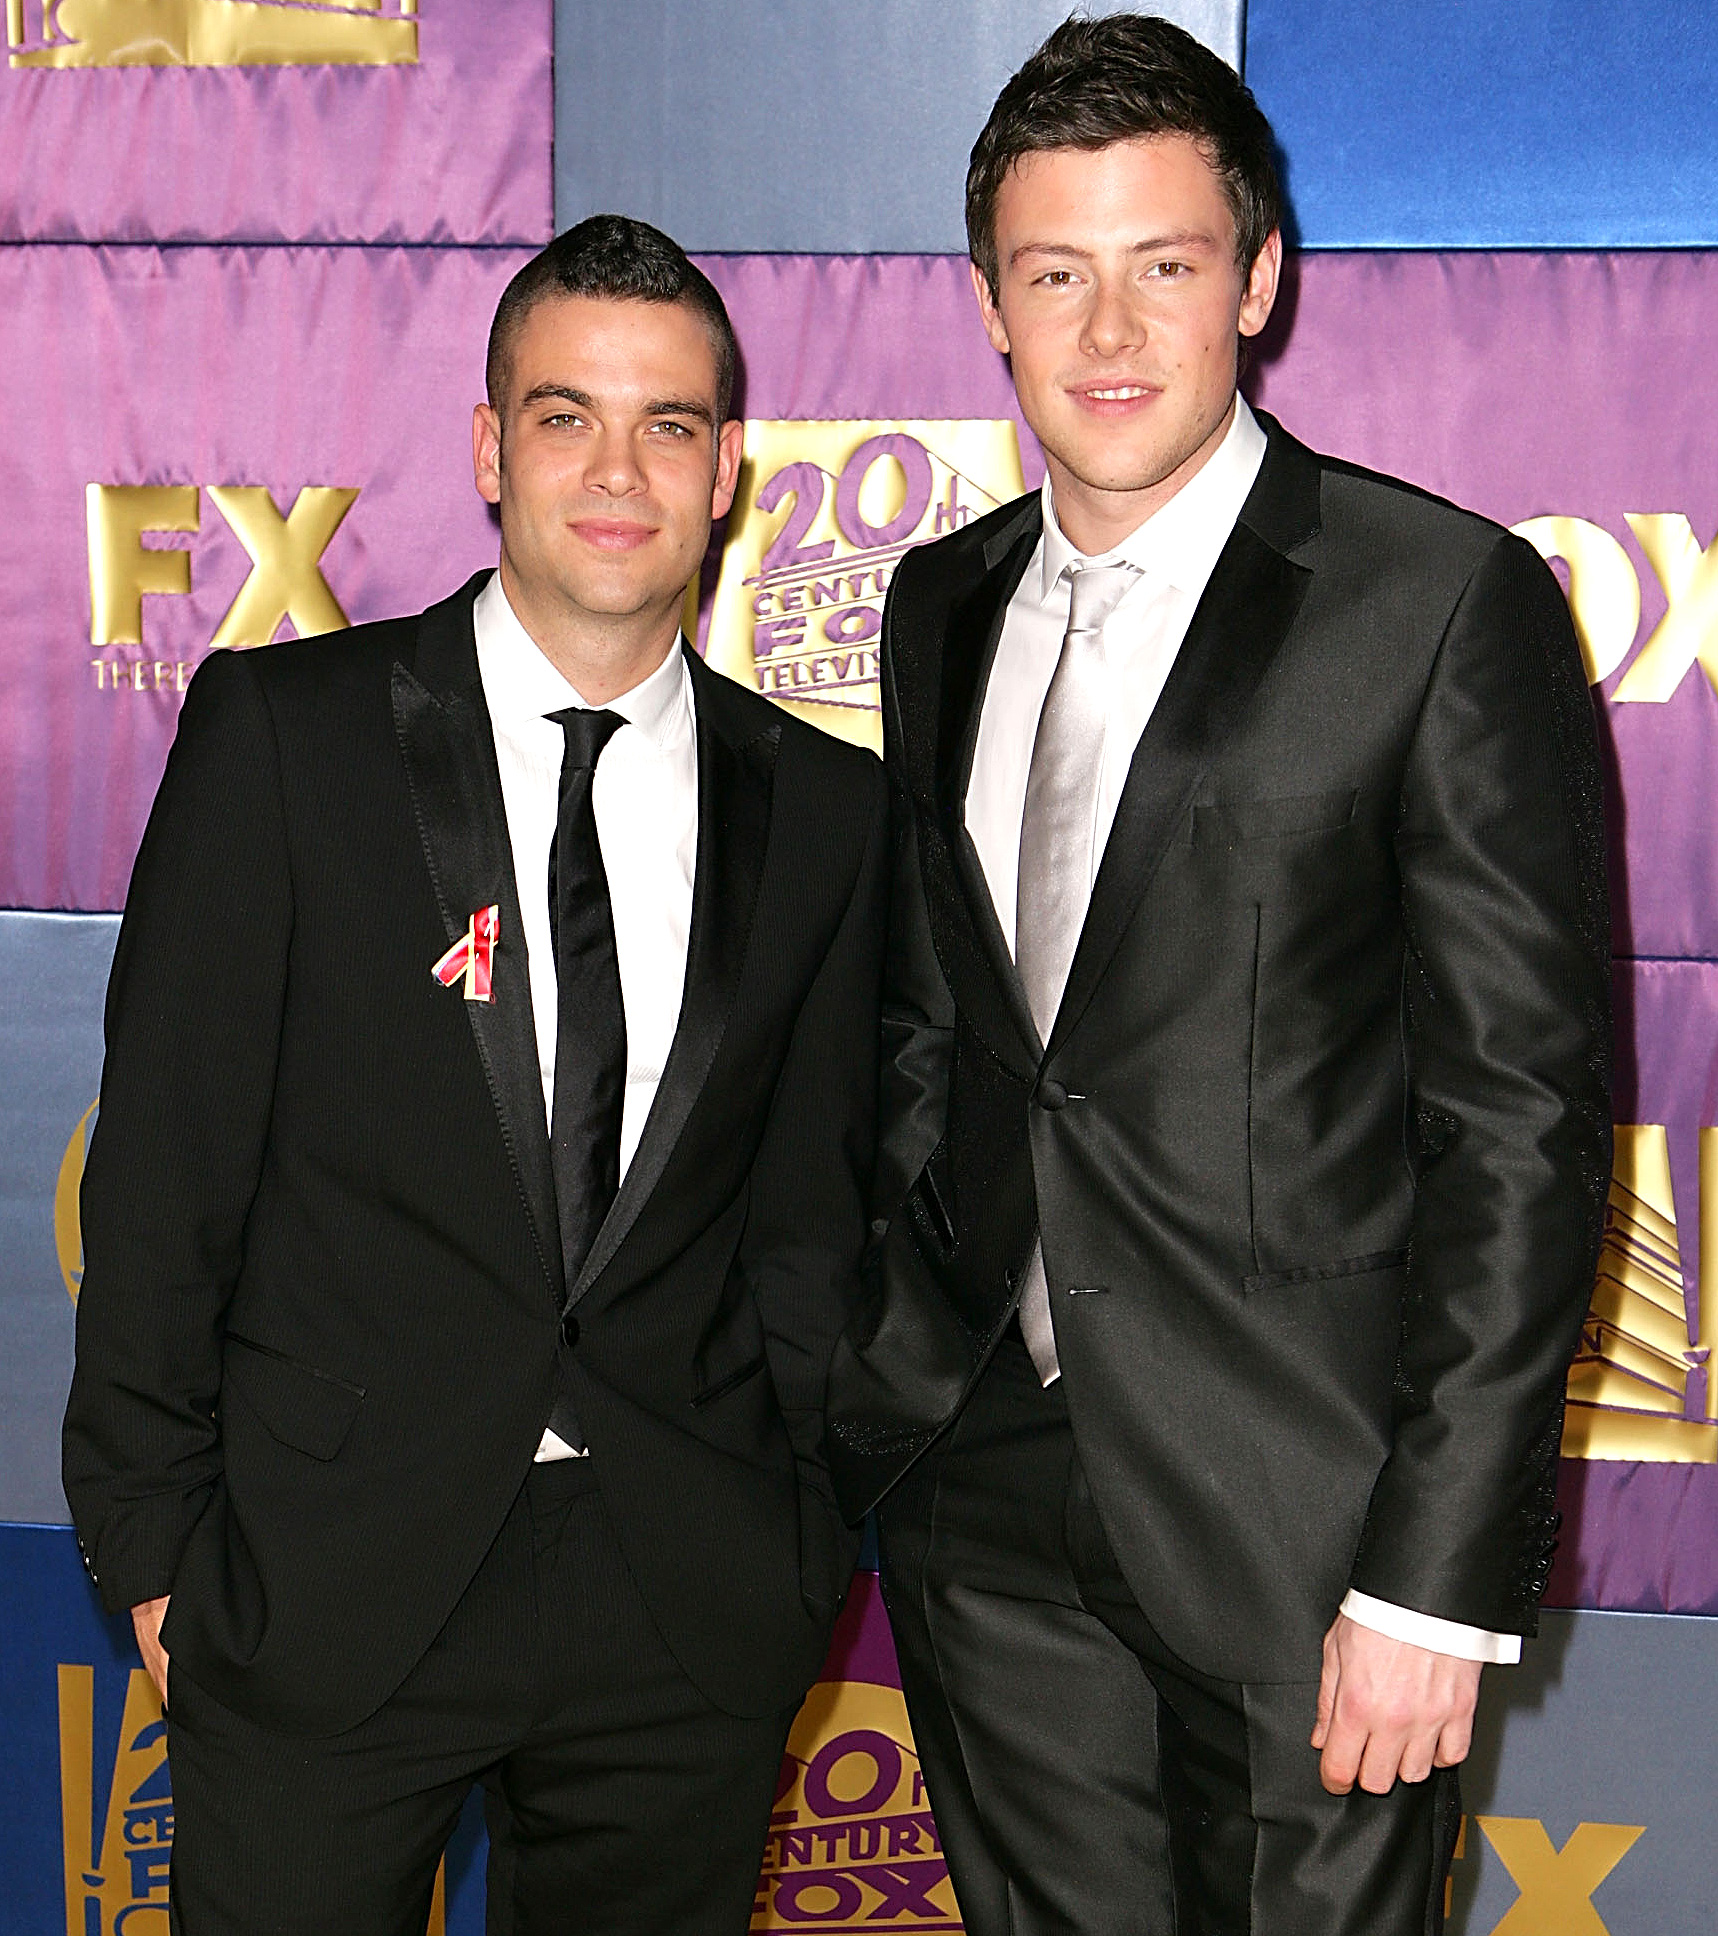 CENTURY CITY, CA - JANUARY 17:  Cory Monteith and Mark Salling of Glee arrive at FOX Hosts 2010 Golden Globe Nominees Party at Craft on January 17, 2010 in Century City, California.  (Photo by Joe Scarnici/FilmMagic)